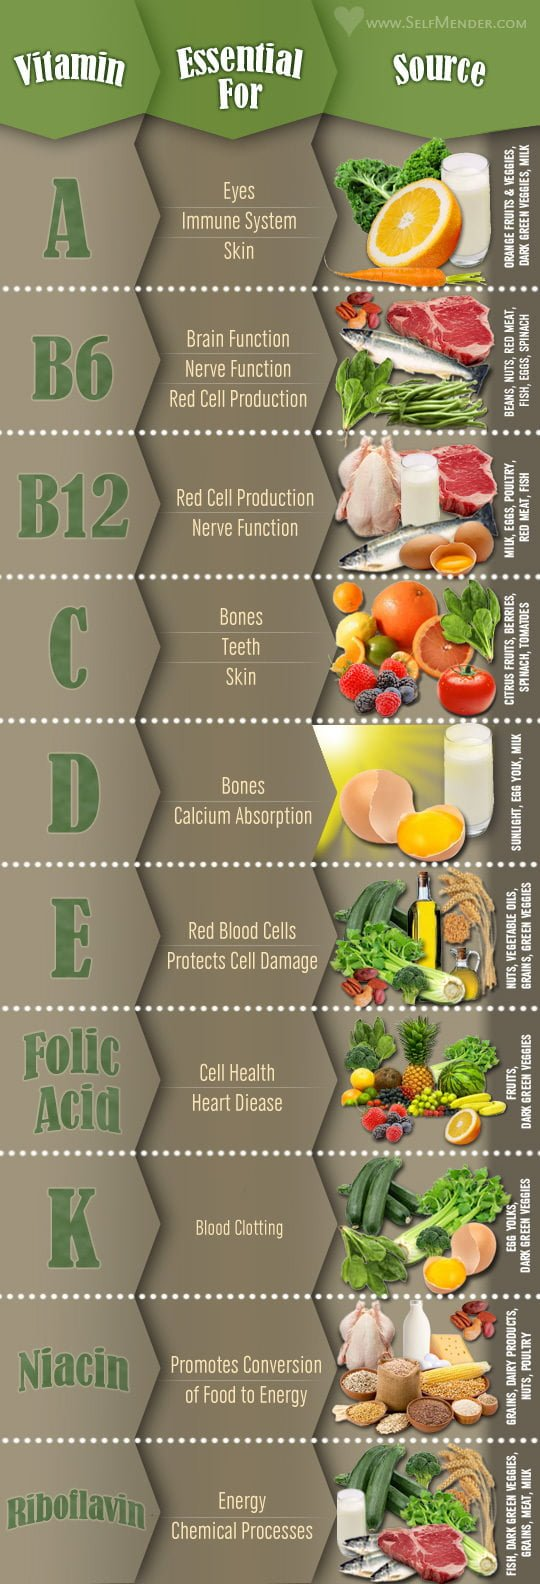 Is Vitamin C Useful For The Common Cold? - Via Is Vitamin C Useful For The Common Cold?